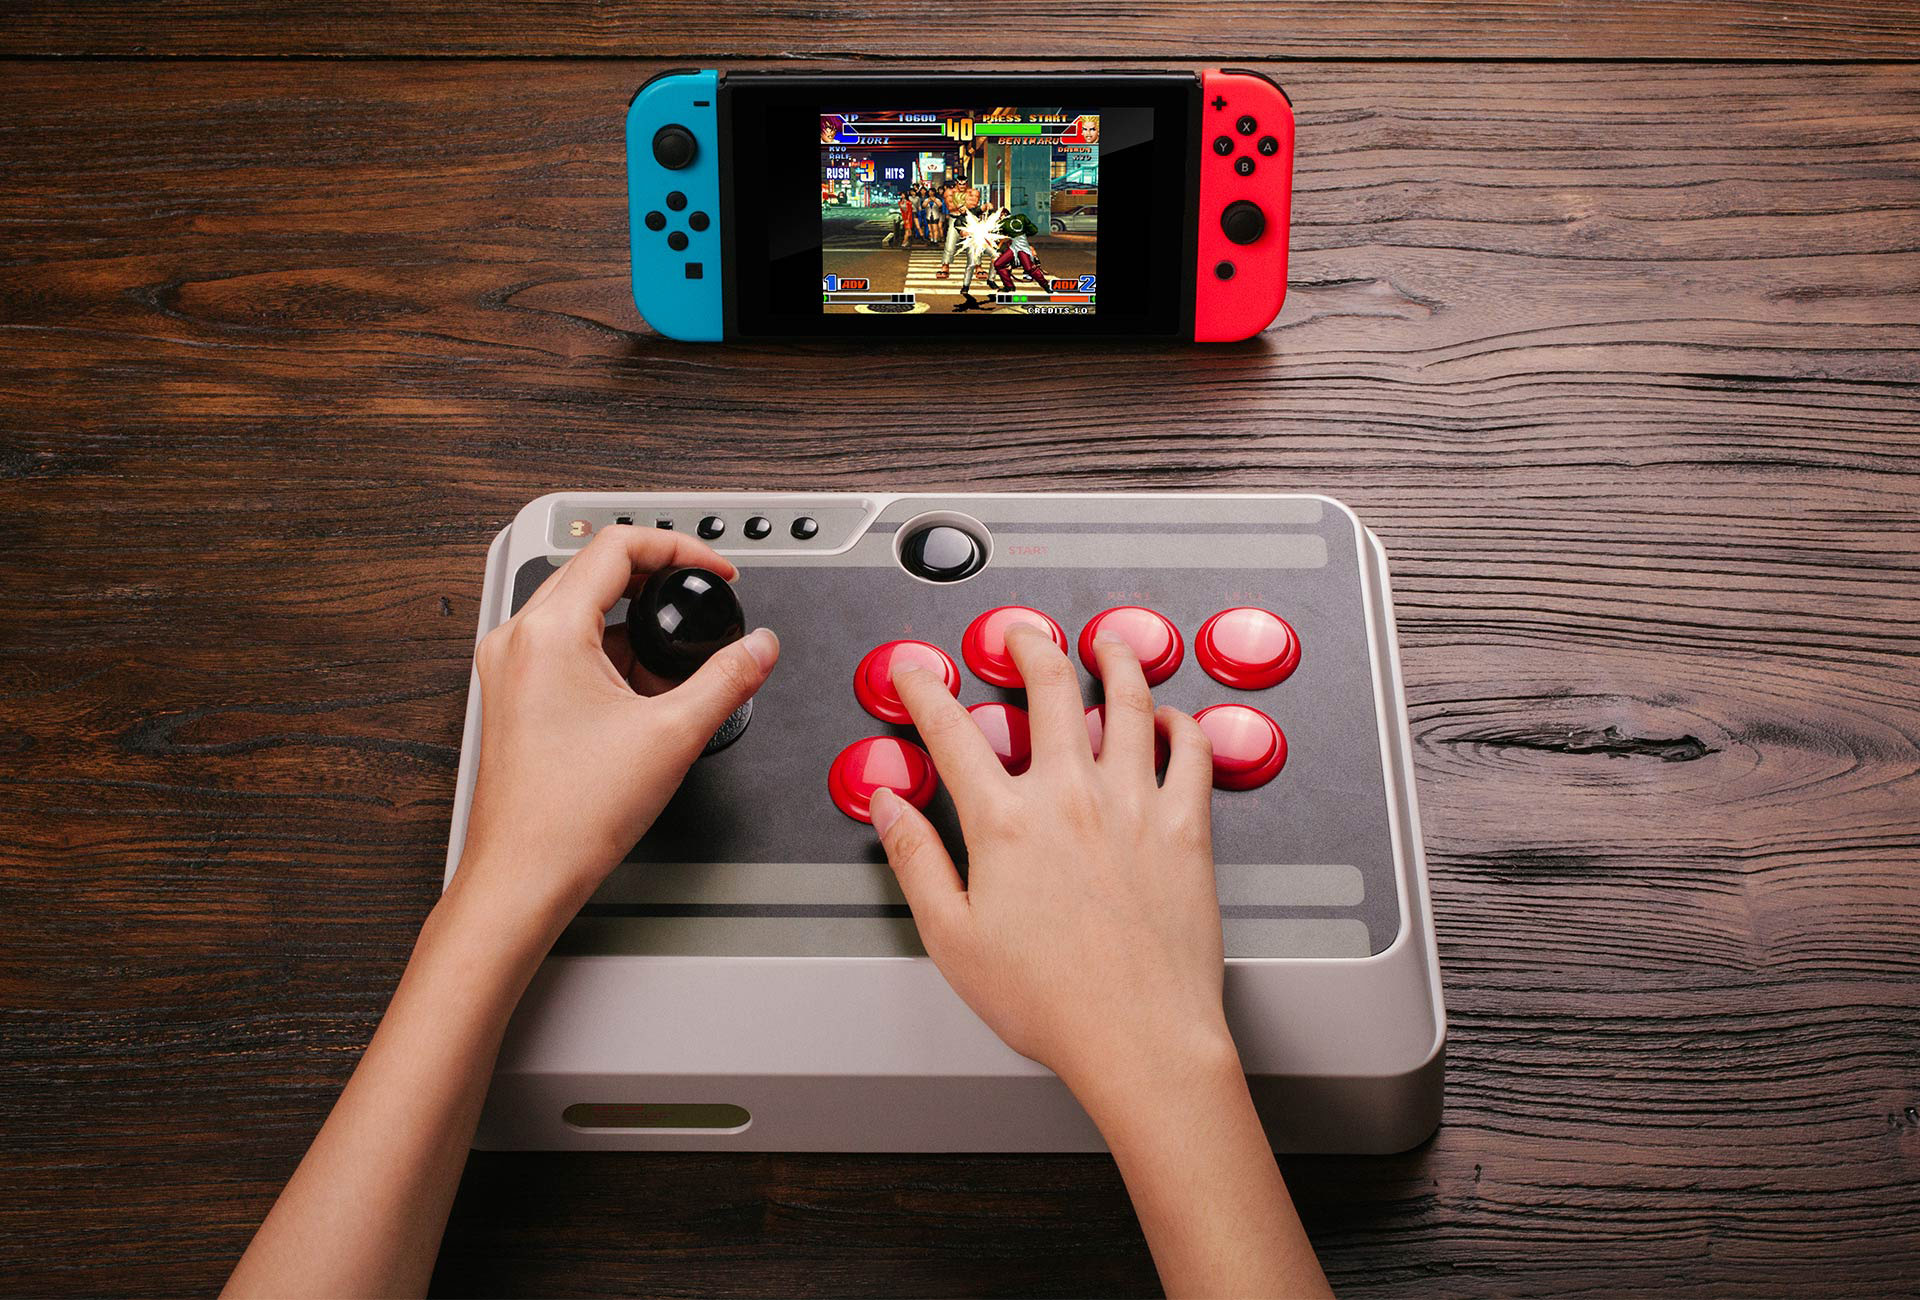 8Bitdo NES30 Arcade Stick 2 out of 11 image gallery